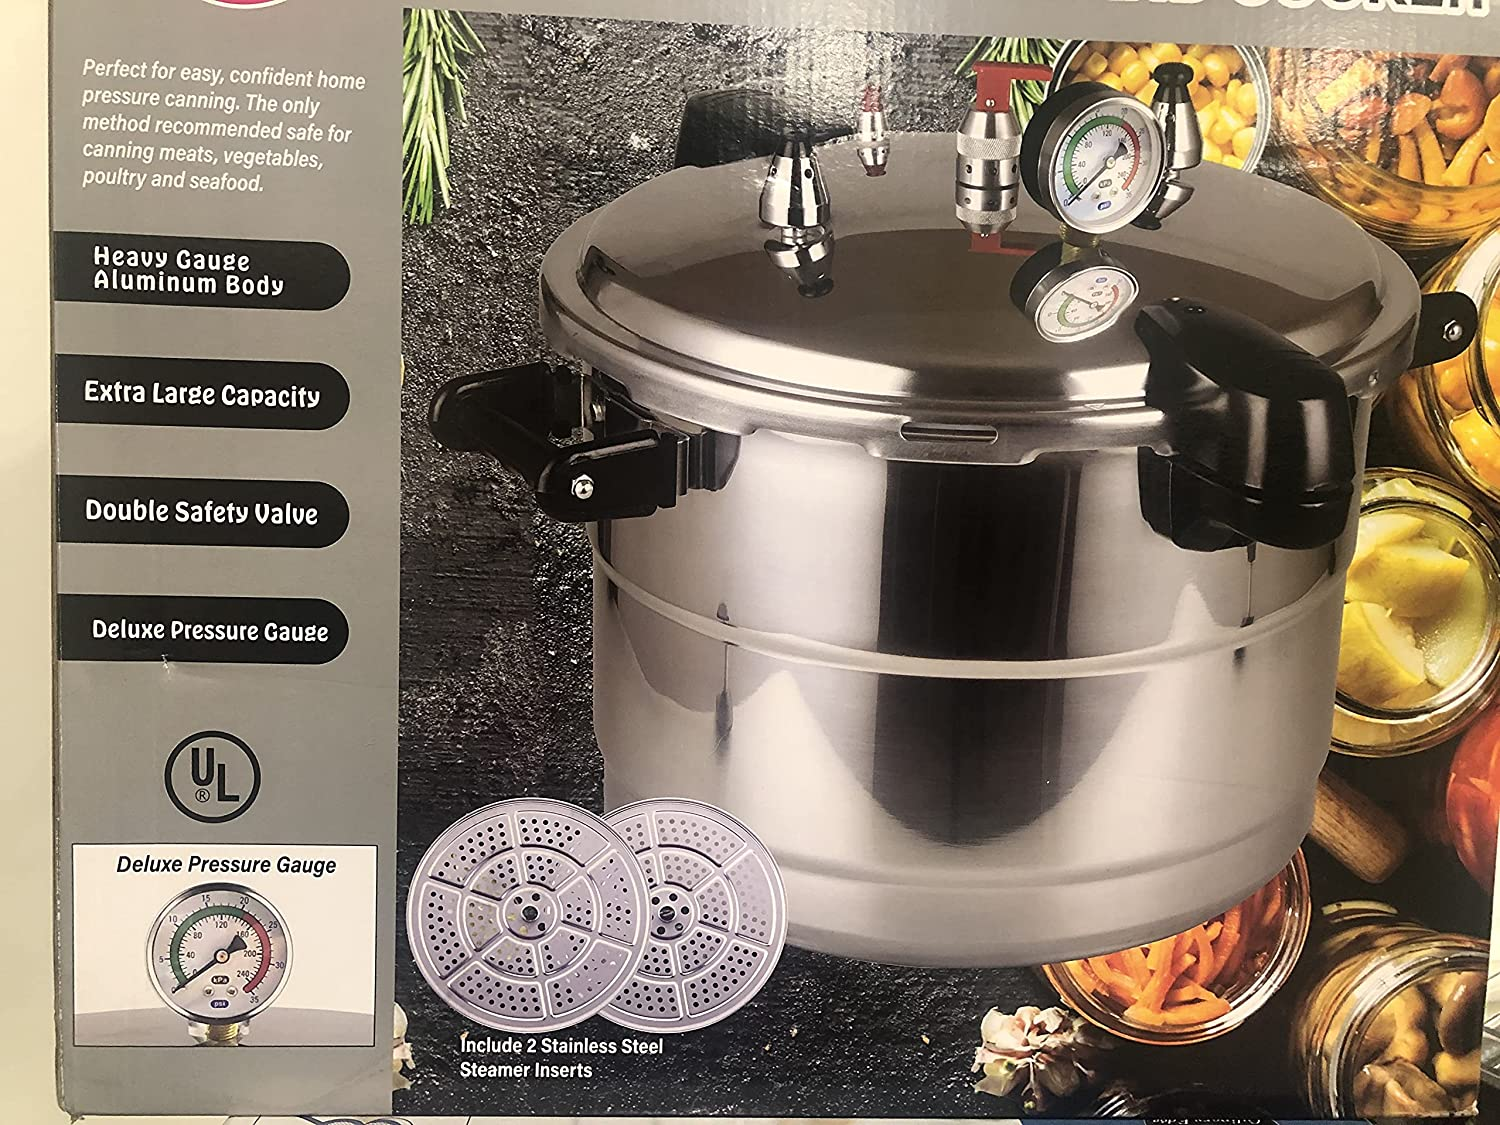 Kitchen & Dining Cookware included with 2 Stainless Steel Steamers ...